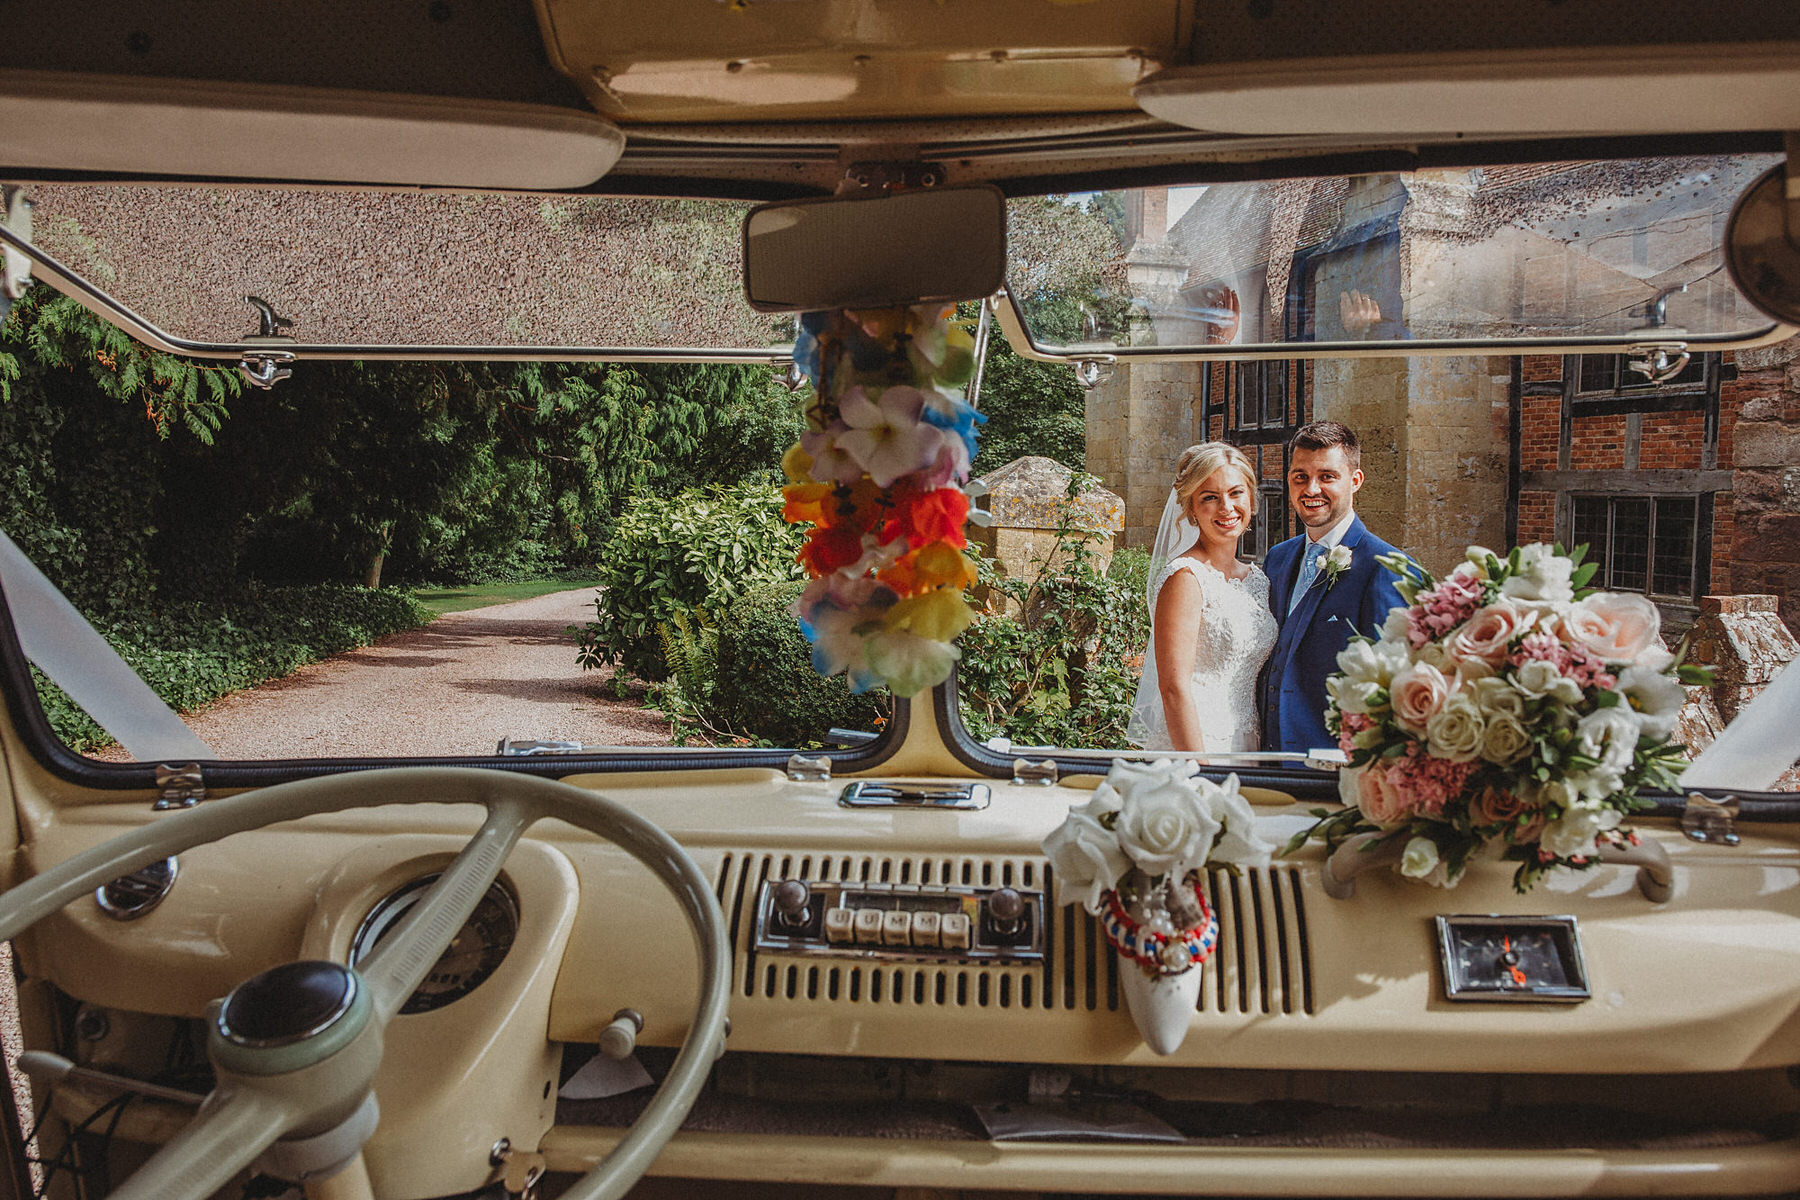 VW Wedding camper van at Birtsmorton Court